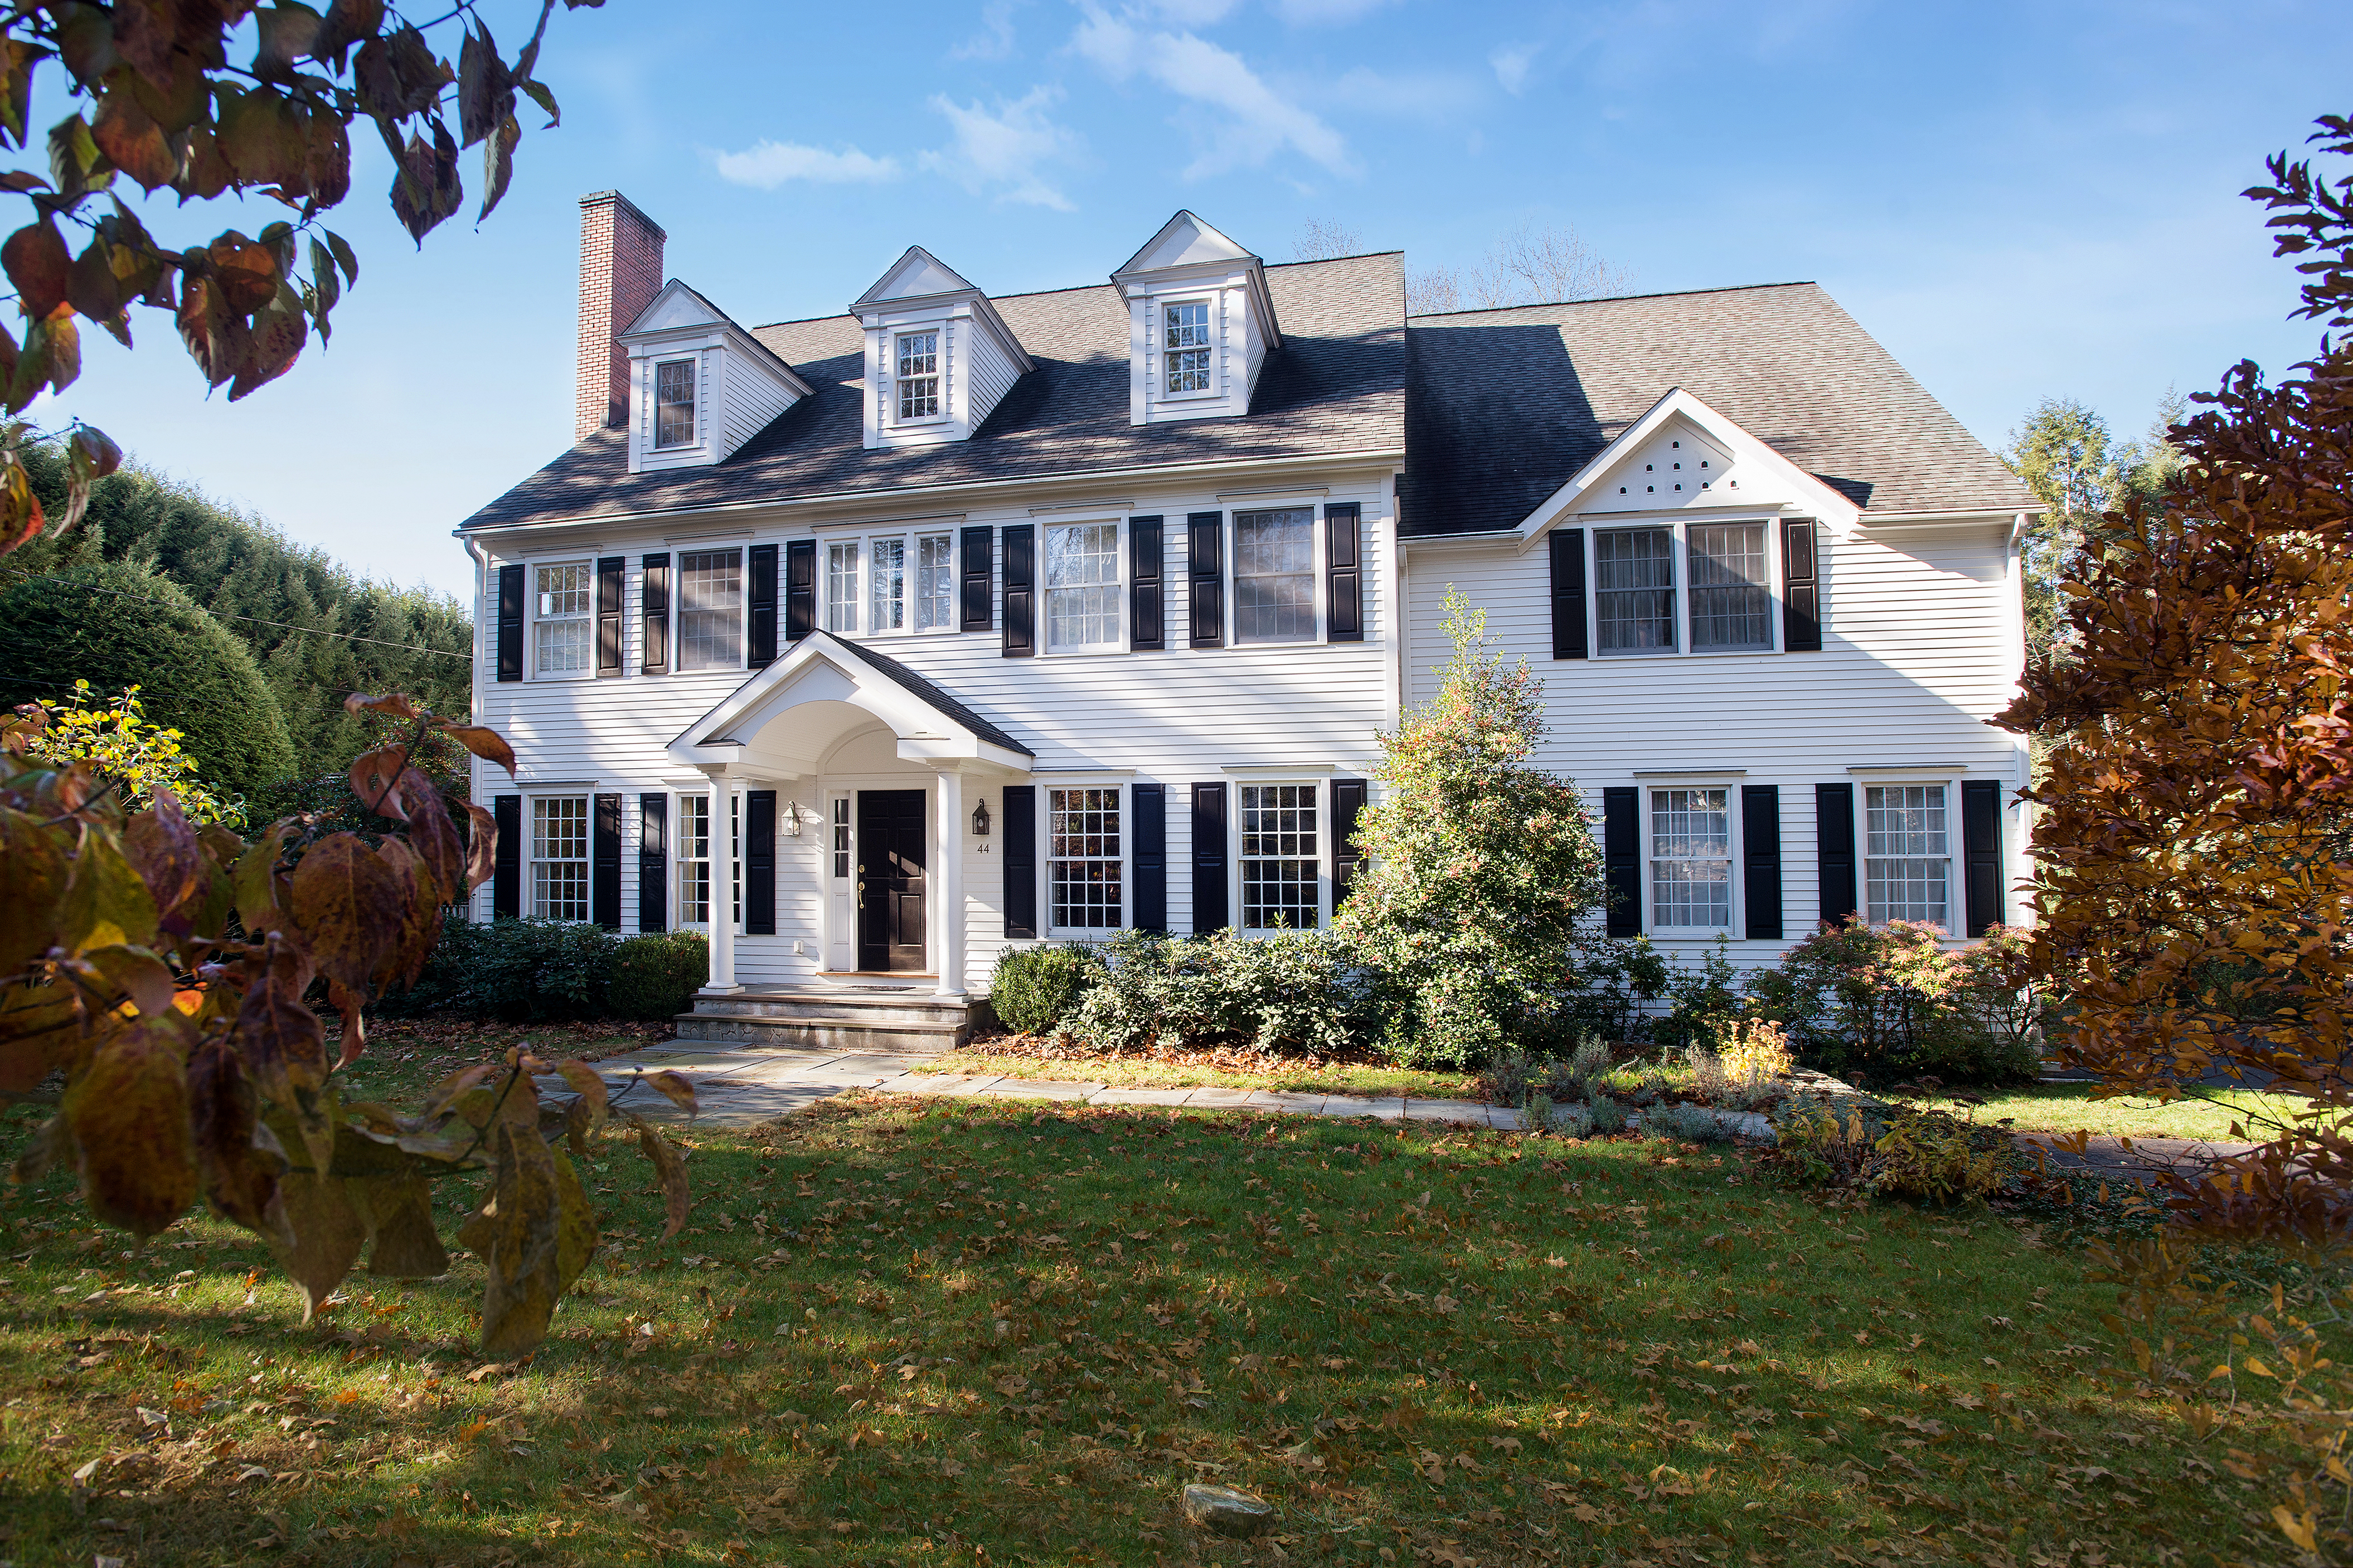 Single Family Home for Sale at 44 Weed Street New Canaan, Connecticut, 06840 United States